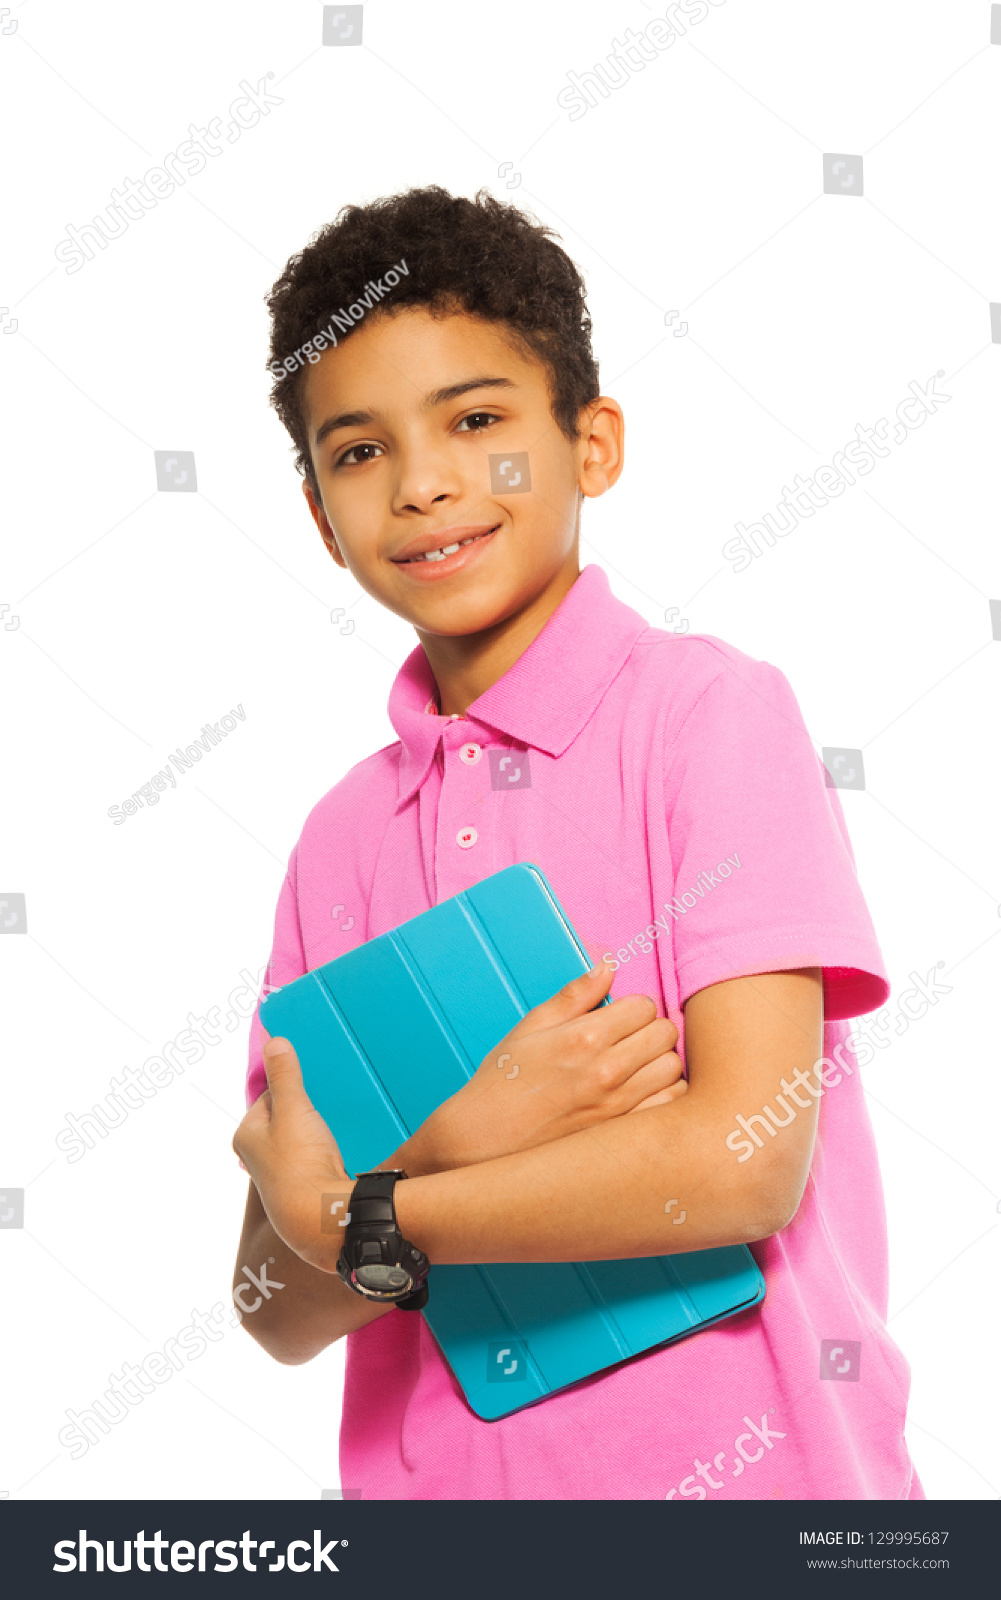 10 Cute Guys With Blonde Hair: Cute 10 Years Old Black Boy Standing With Tablet Computer